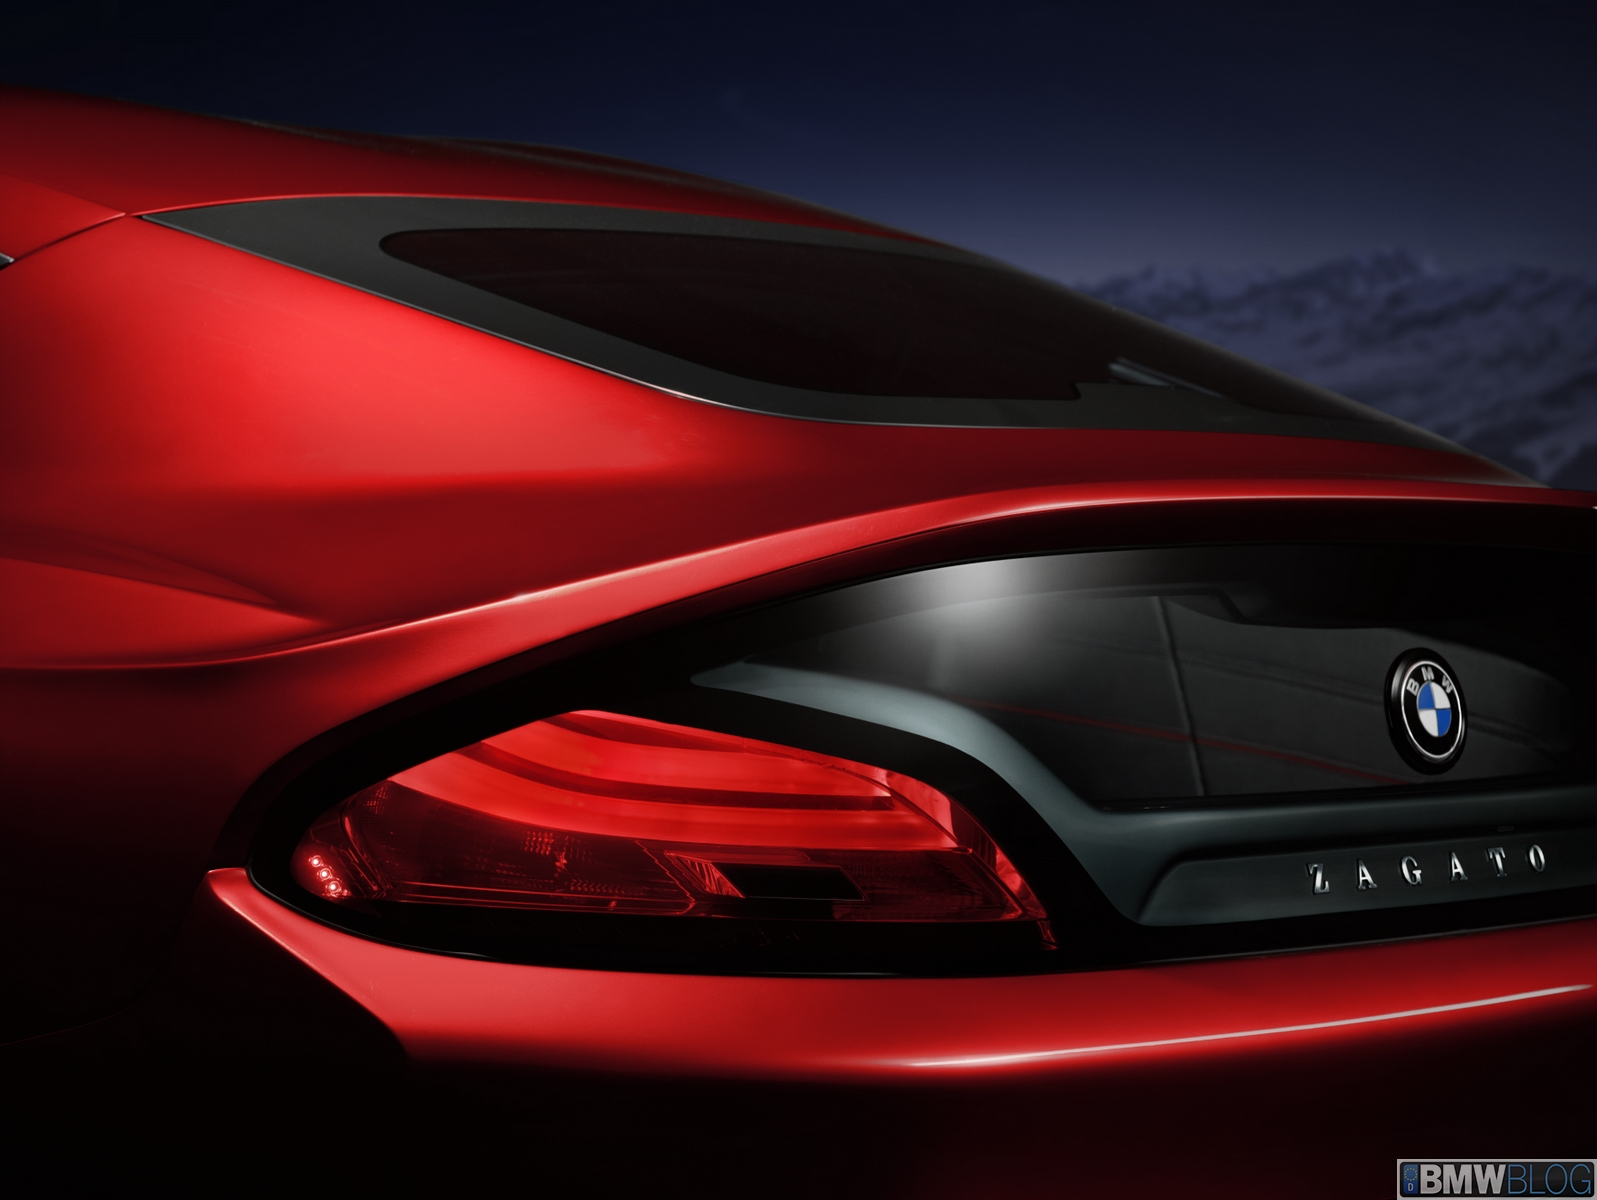 1597x1200 - BMW Zagato Coupe Wallpapers 26